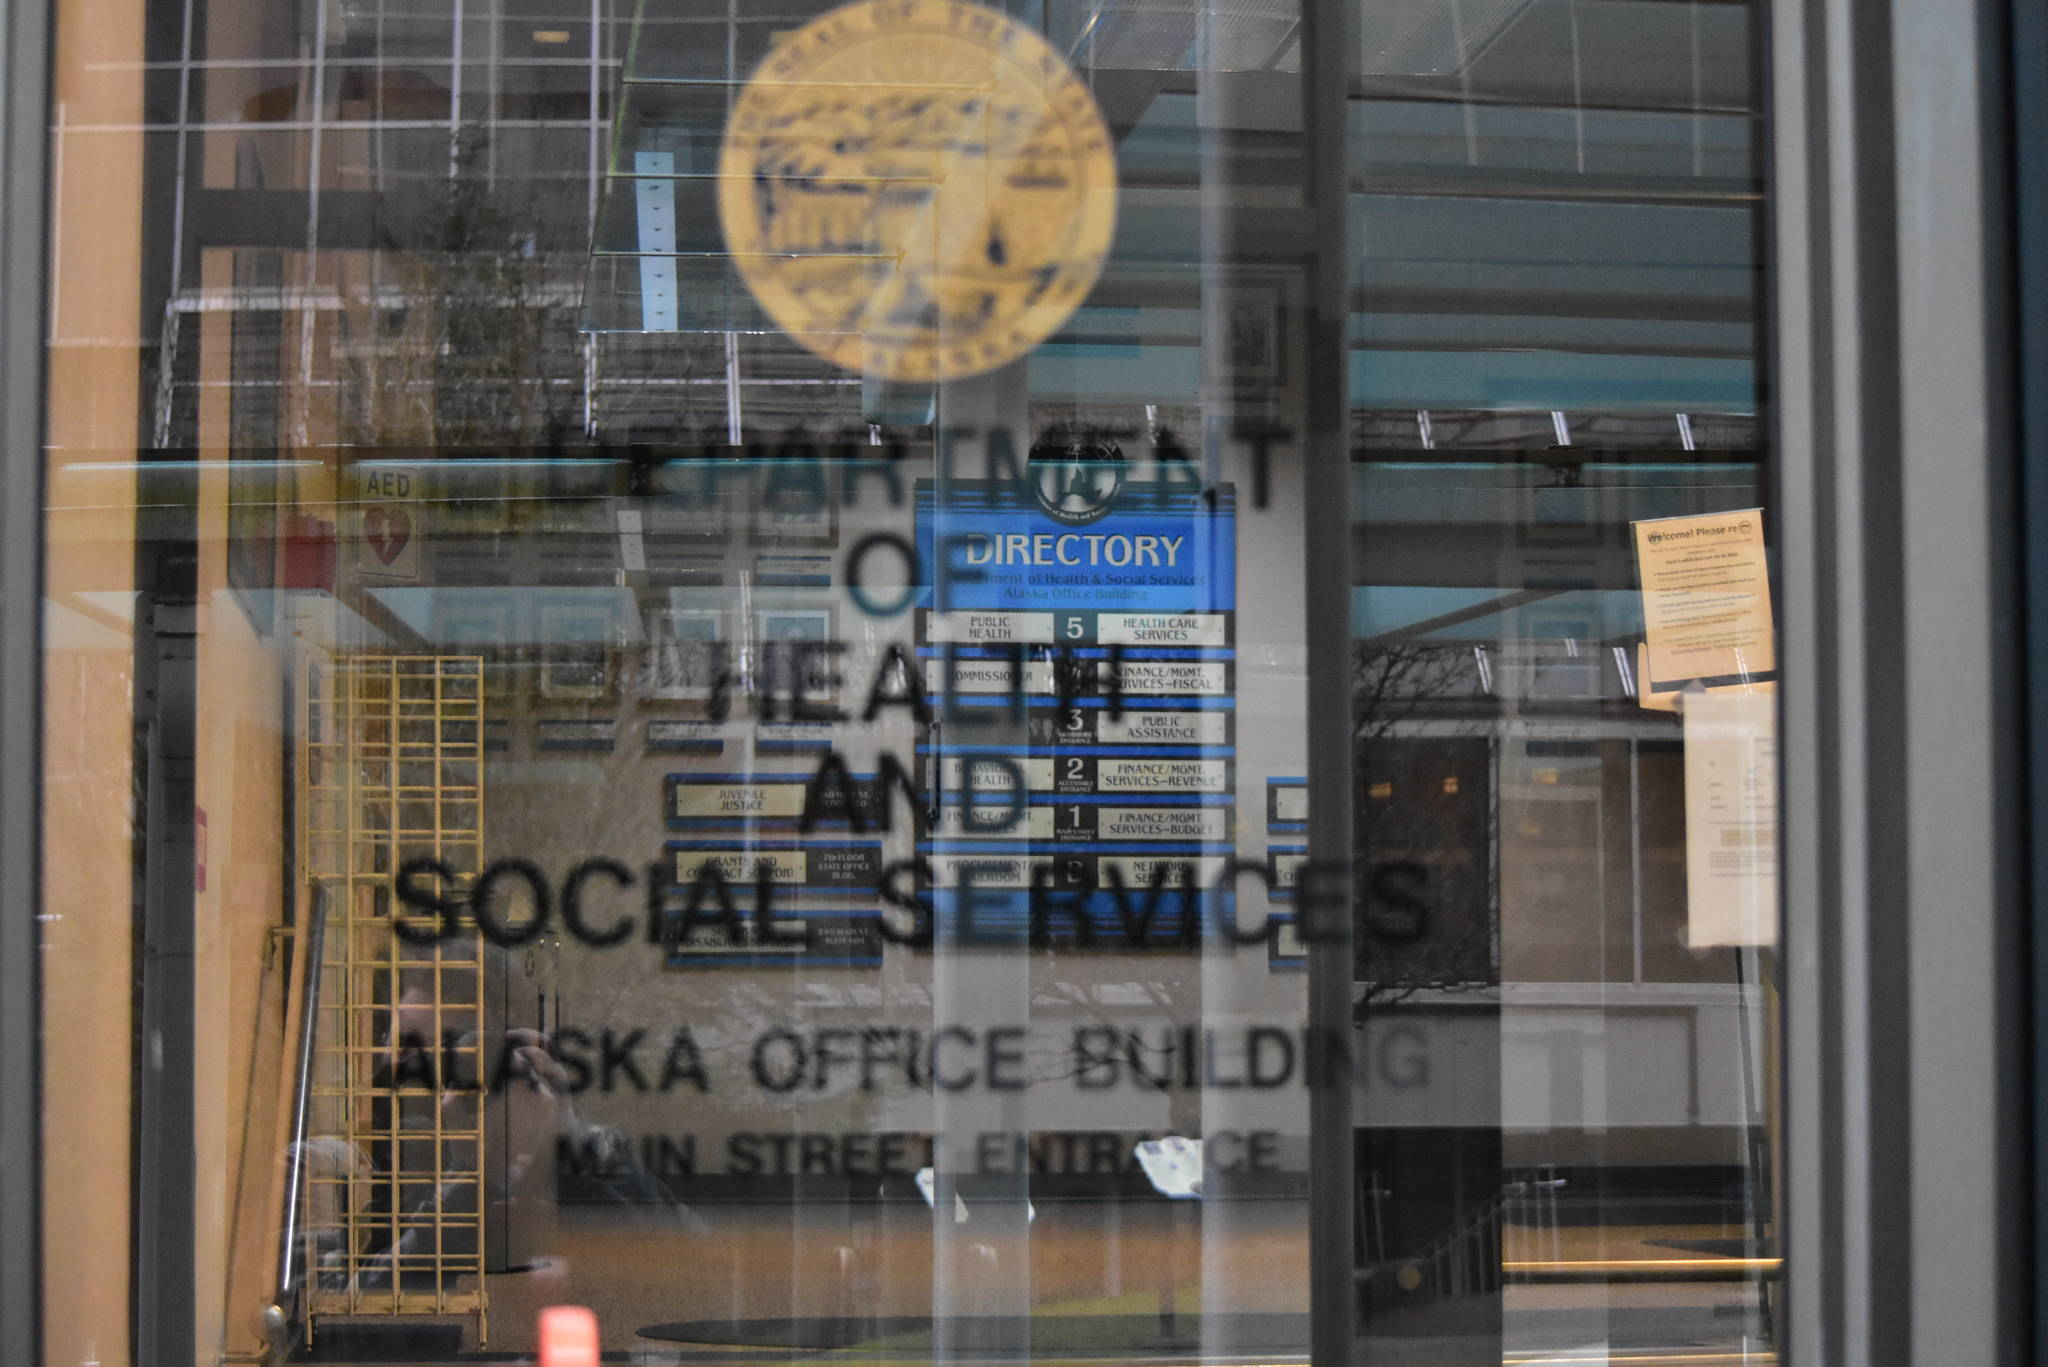 The entrance to the Alaska Department of Health and Social Services building in downtown Juneau. Gov. Mike Dunleavy has proposed splitting the department to spread the administrative burden, but health care workers and tribal leaders say they weren't consulted and Alaska Natives will likely be negatively impacted. (Peter Segall / Juneau Empire)